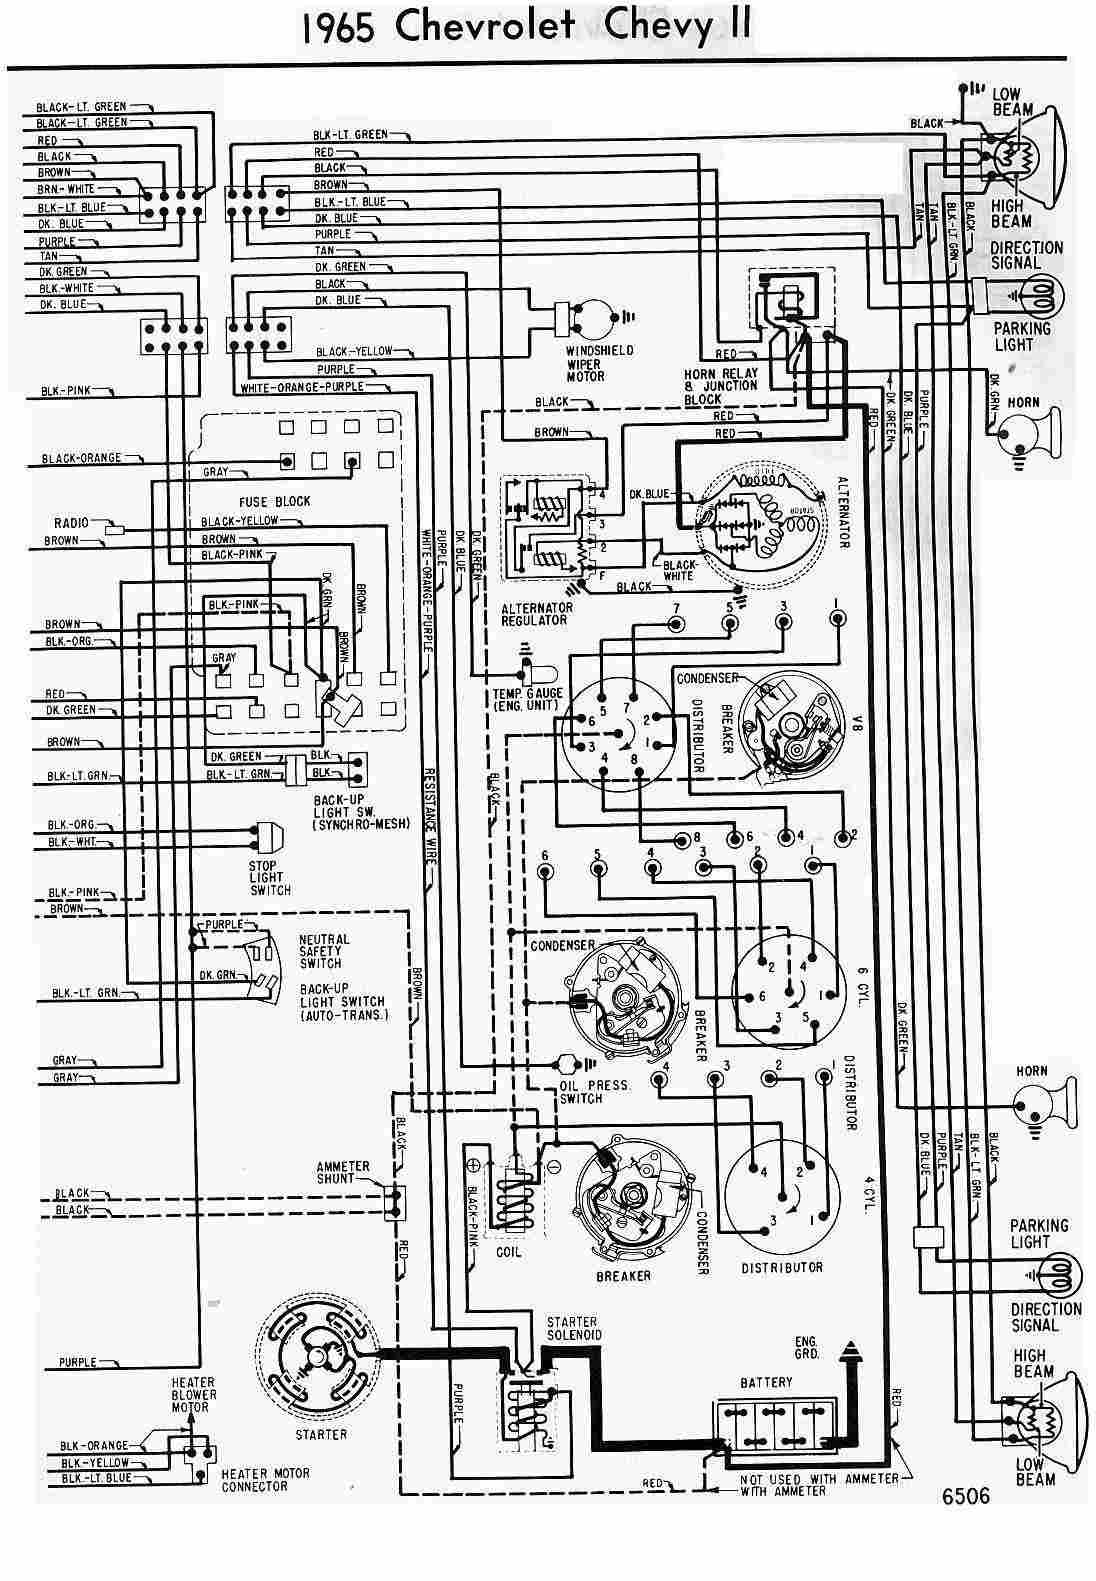 hight resolution of 65 chevy c10 wiring diagram 1965 truck wiring diagram centre65 chevy c10 wiring diagram 1965 truck